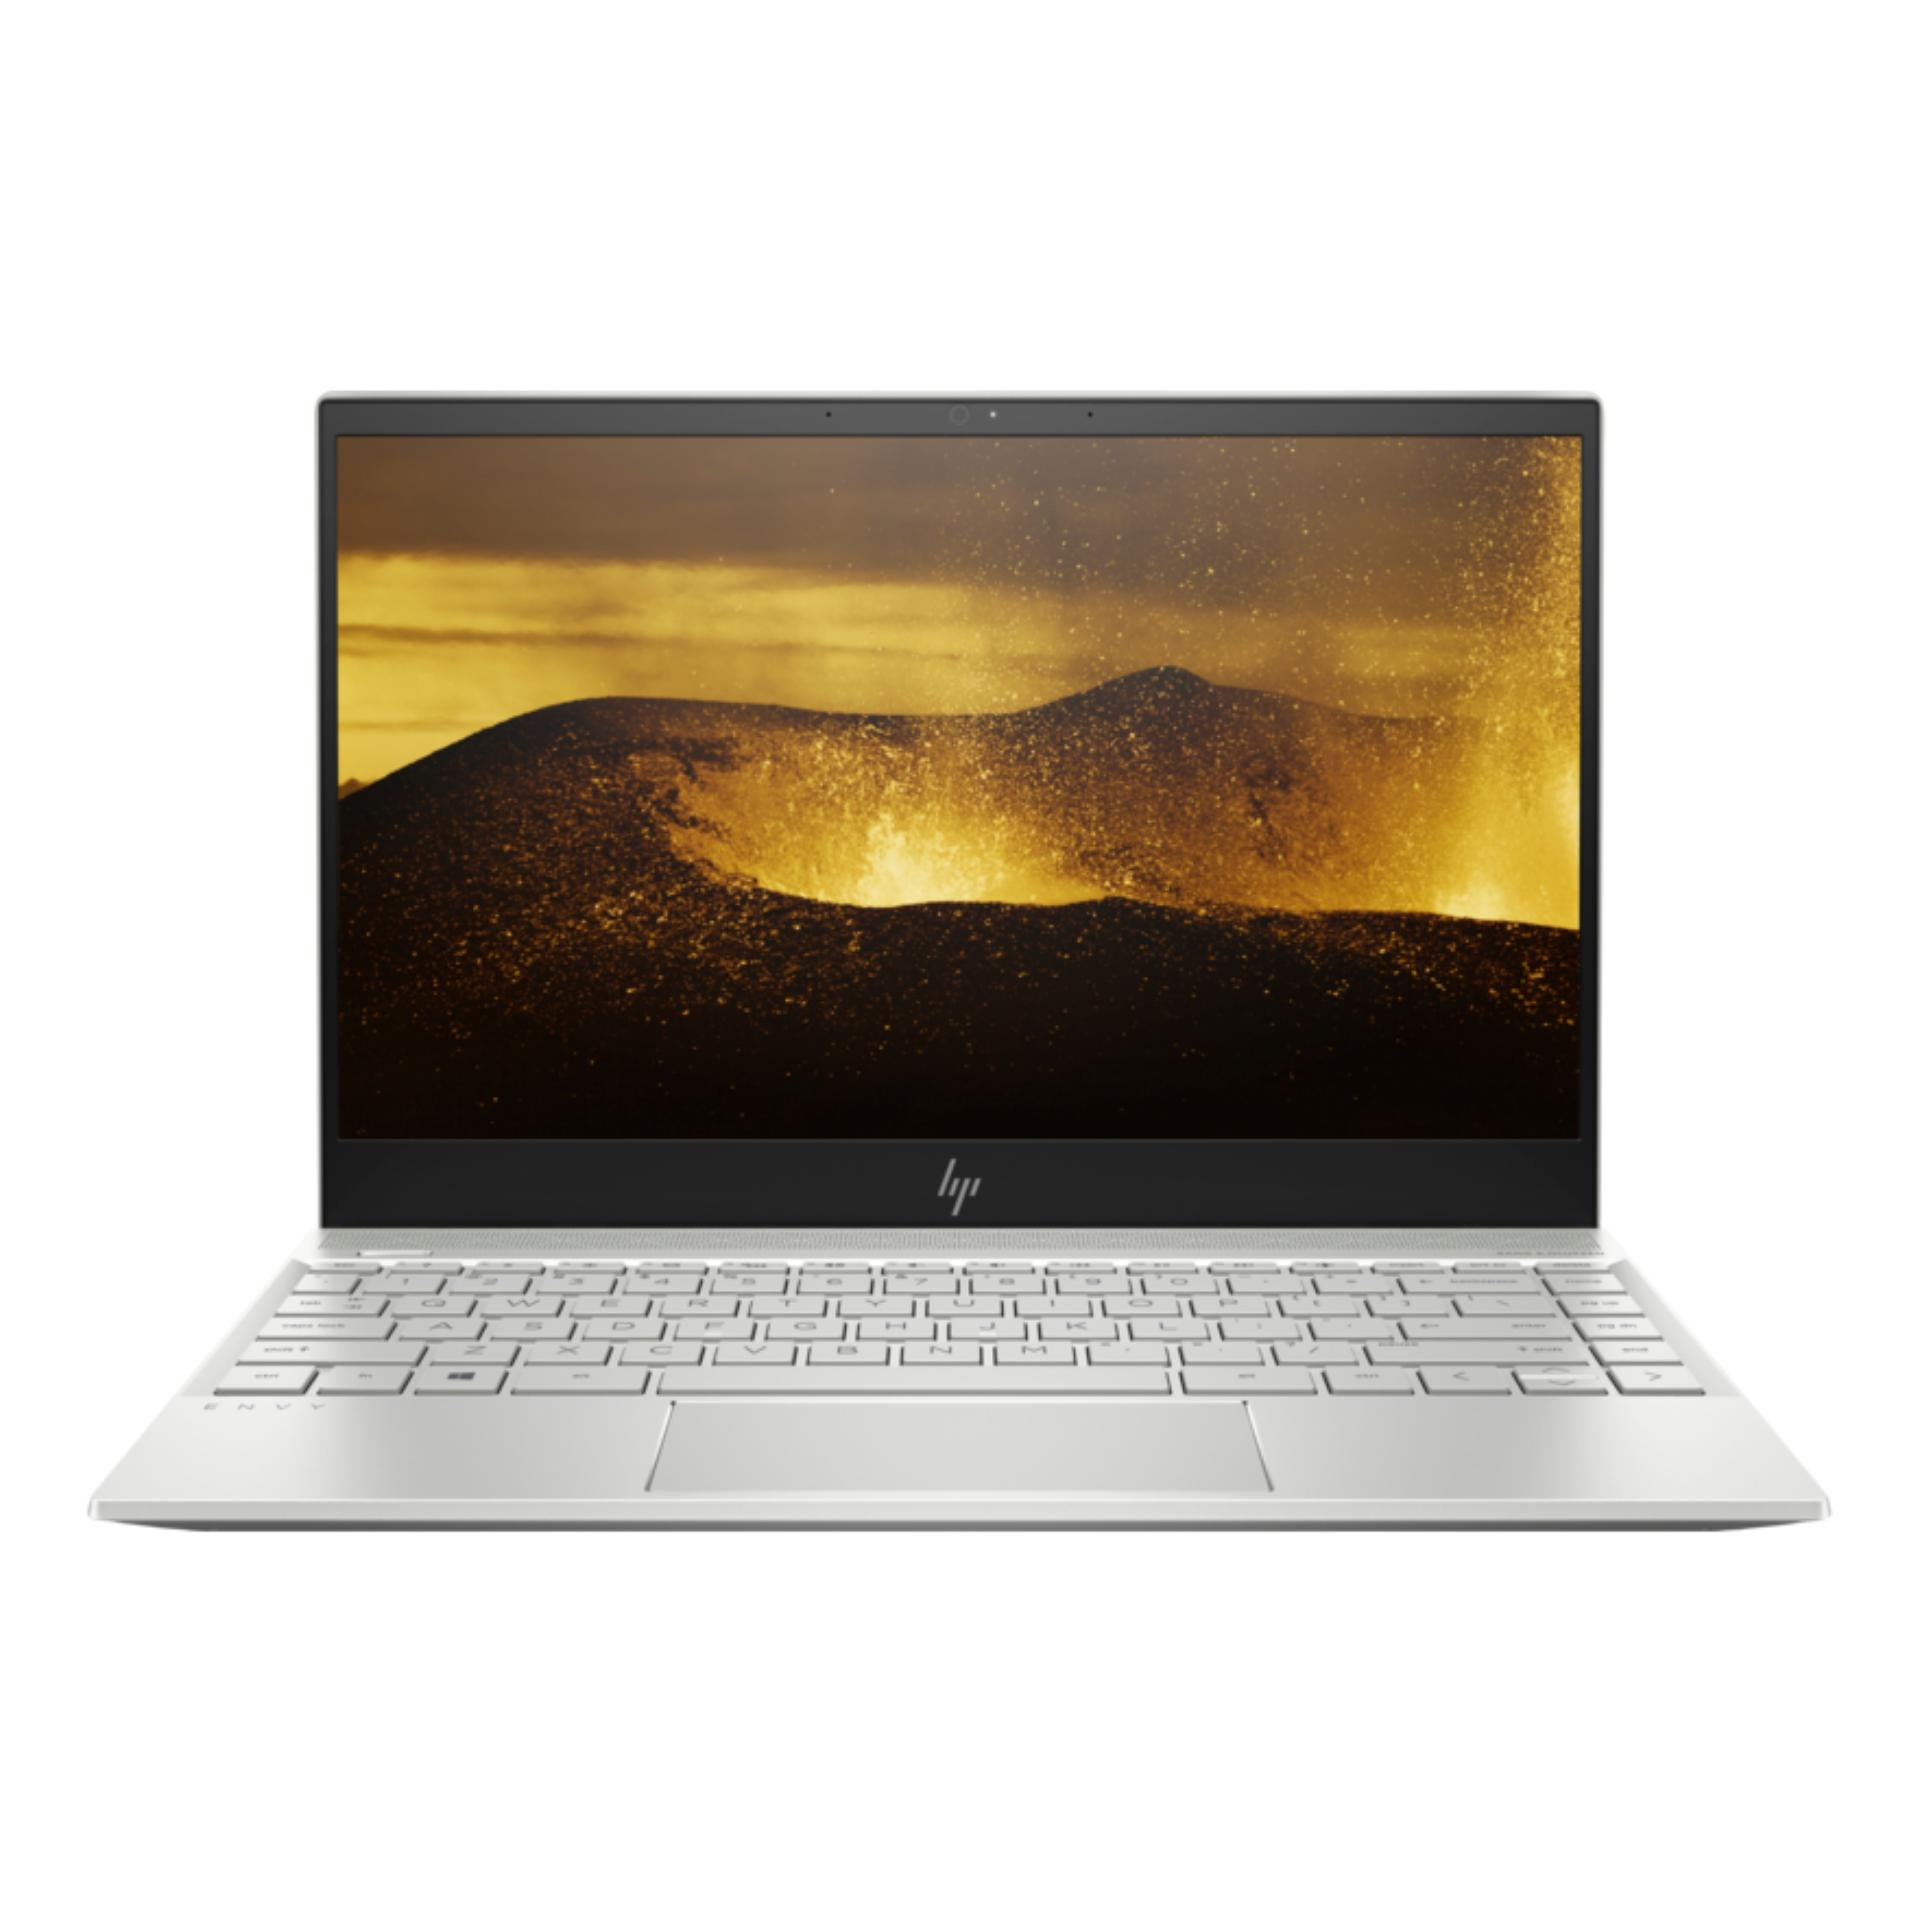 HP ENVY - 13-ah0031tu (Natural silver)